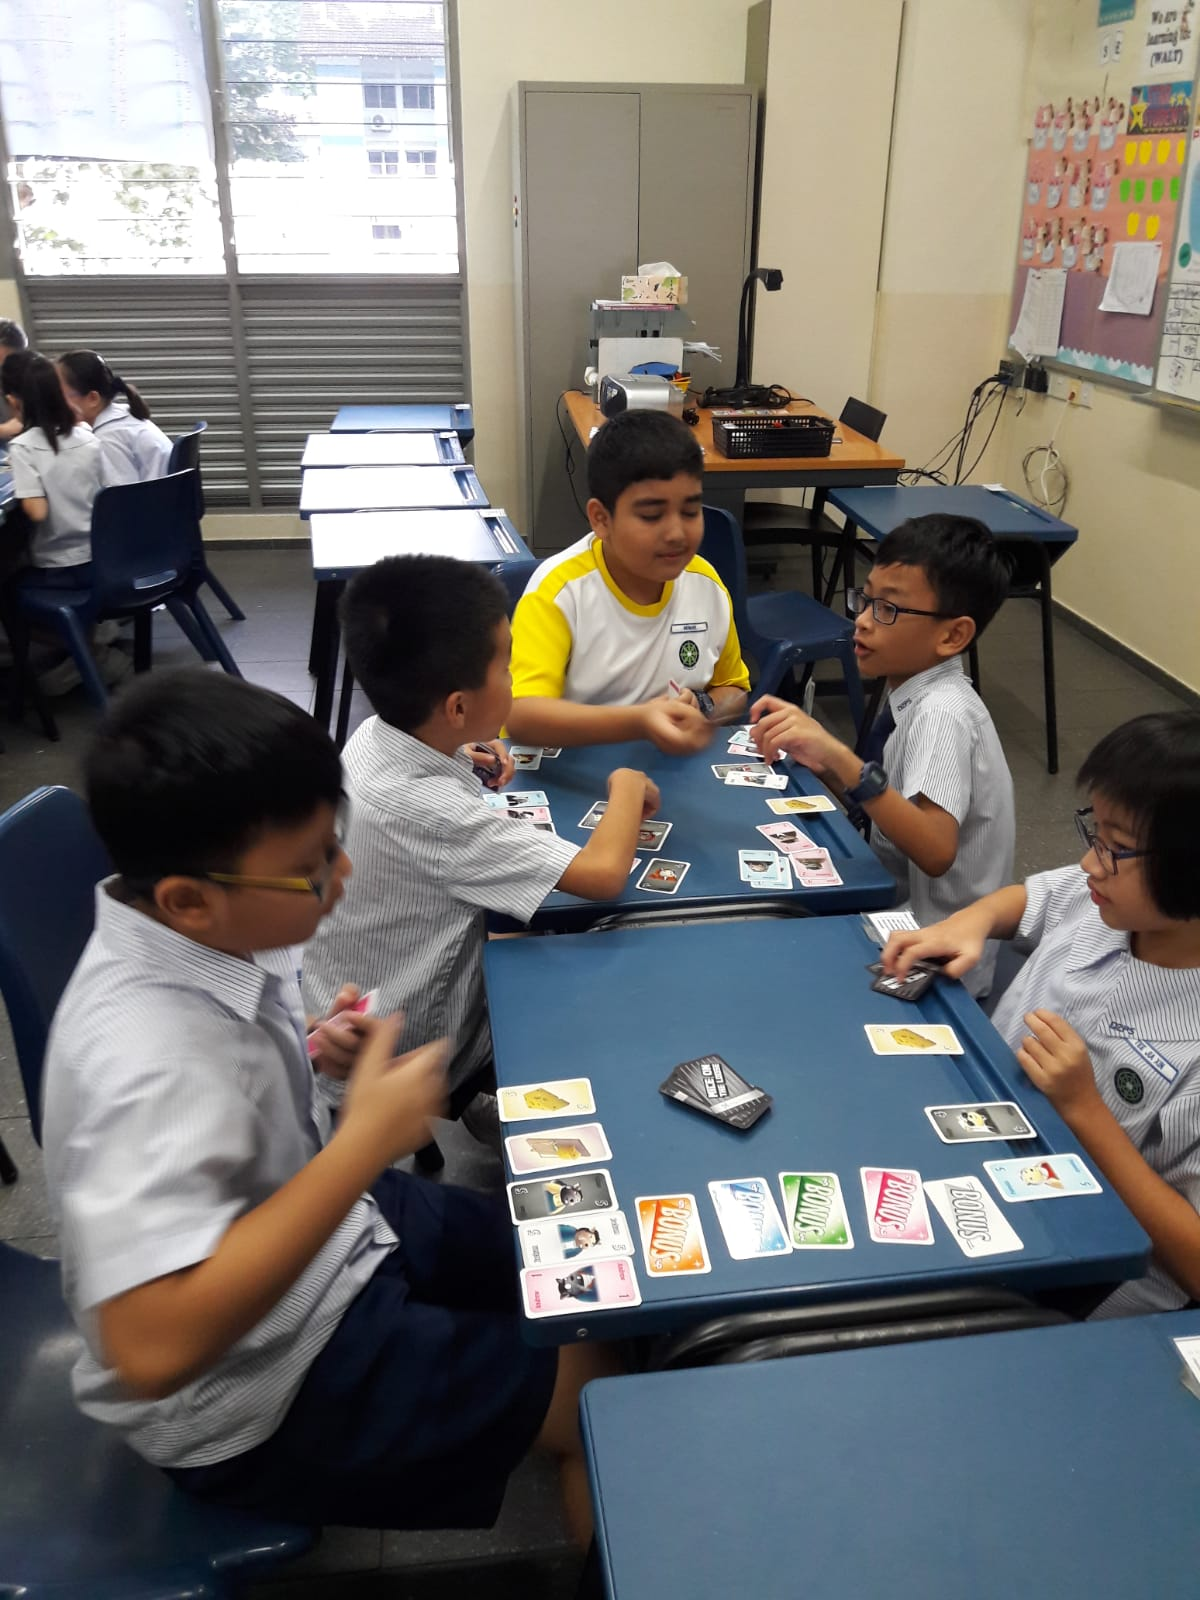 DZ Students (playing cards).jpg